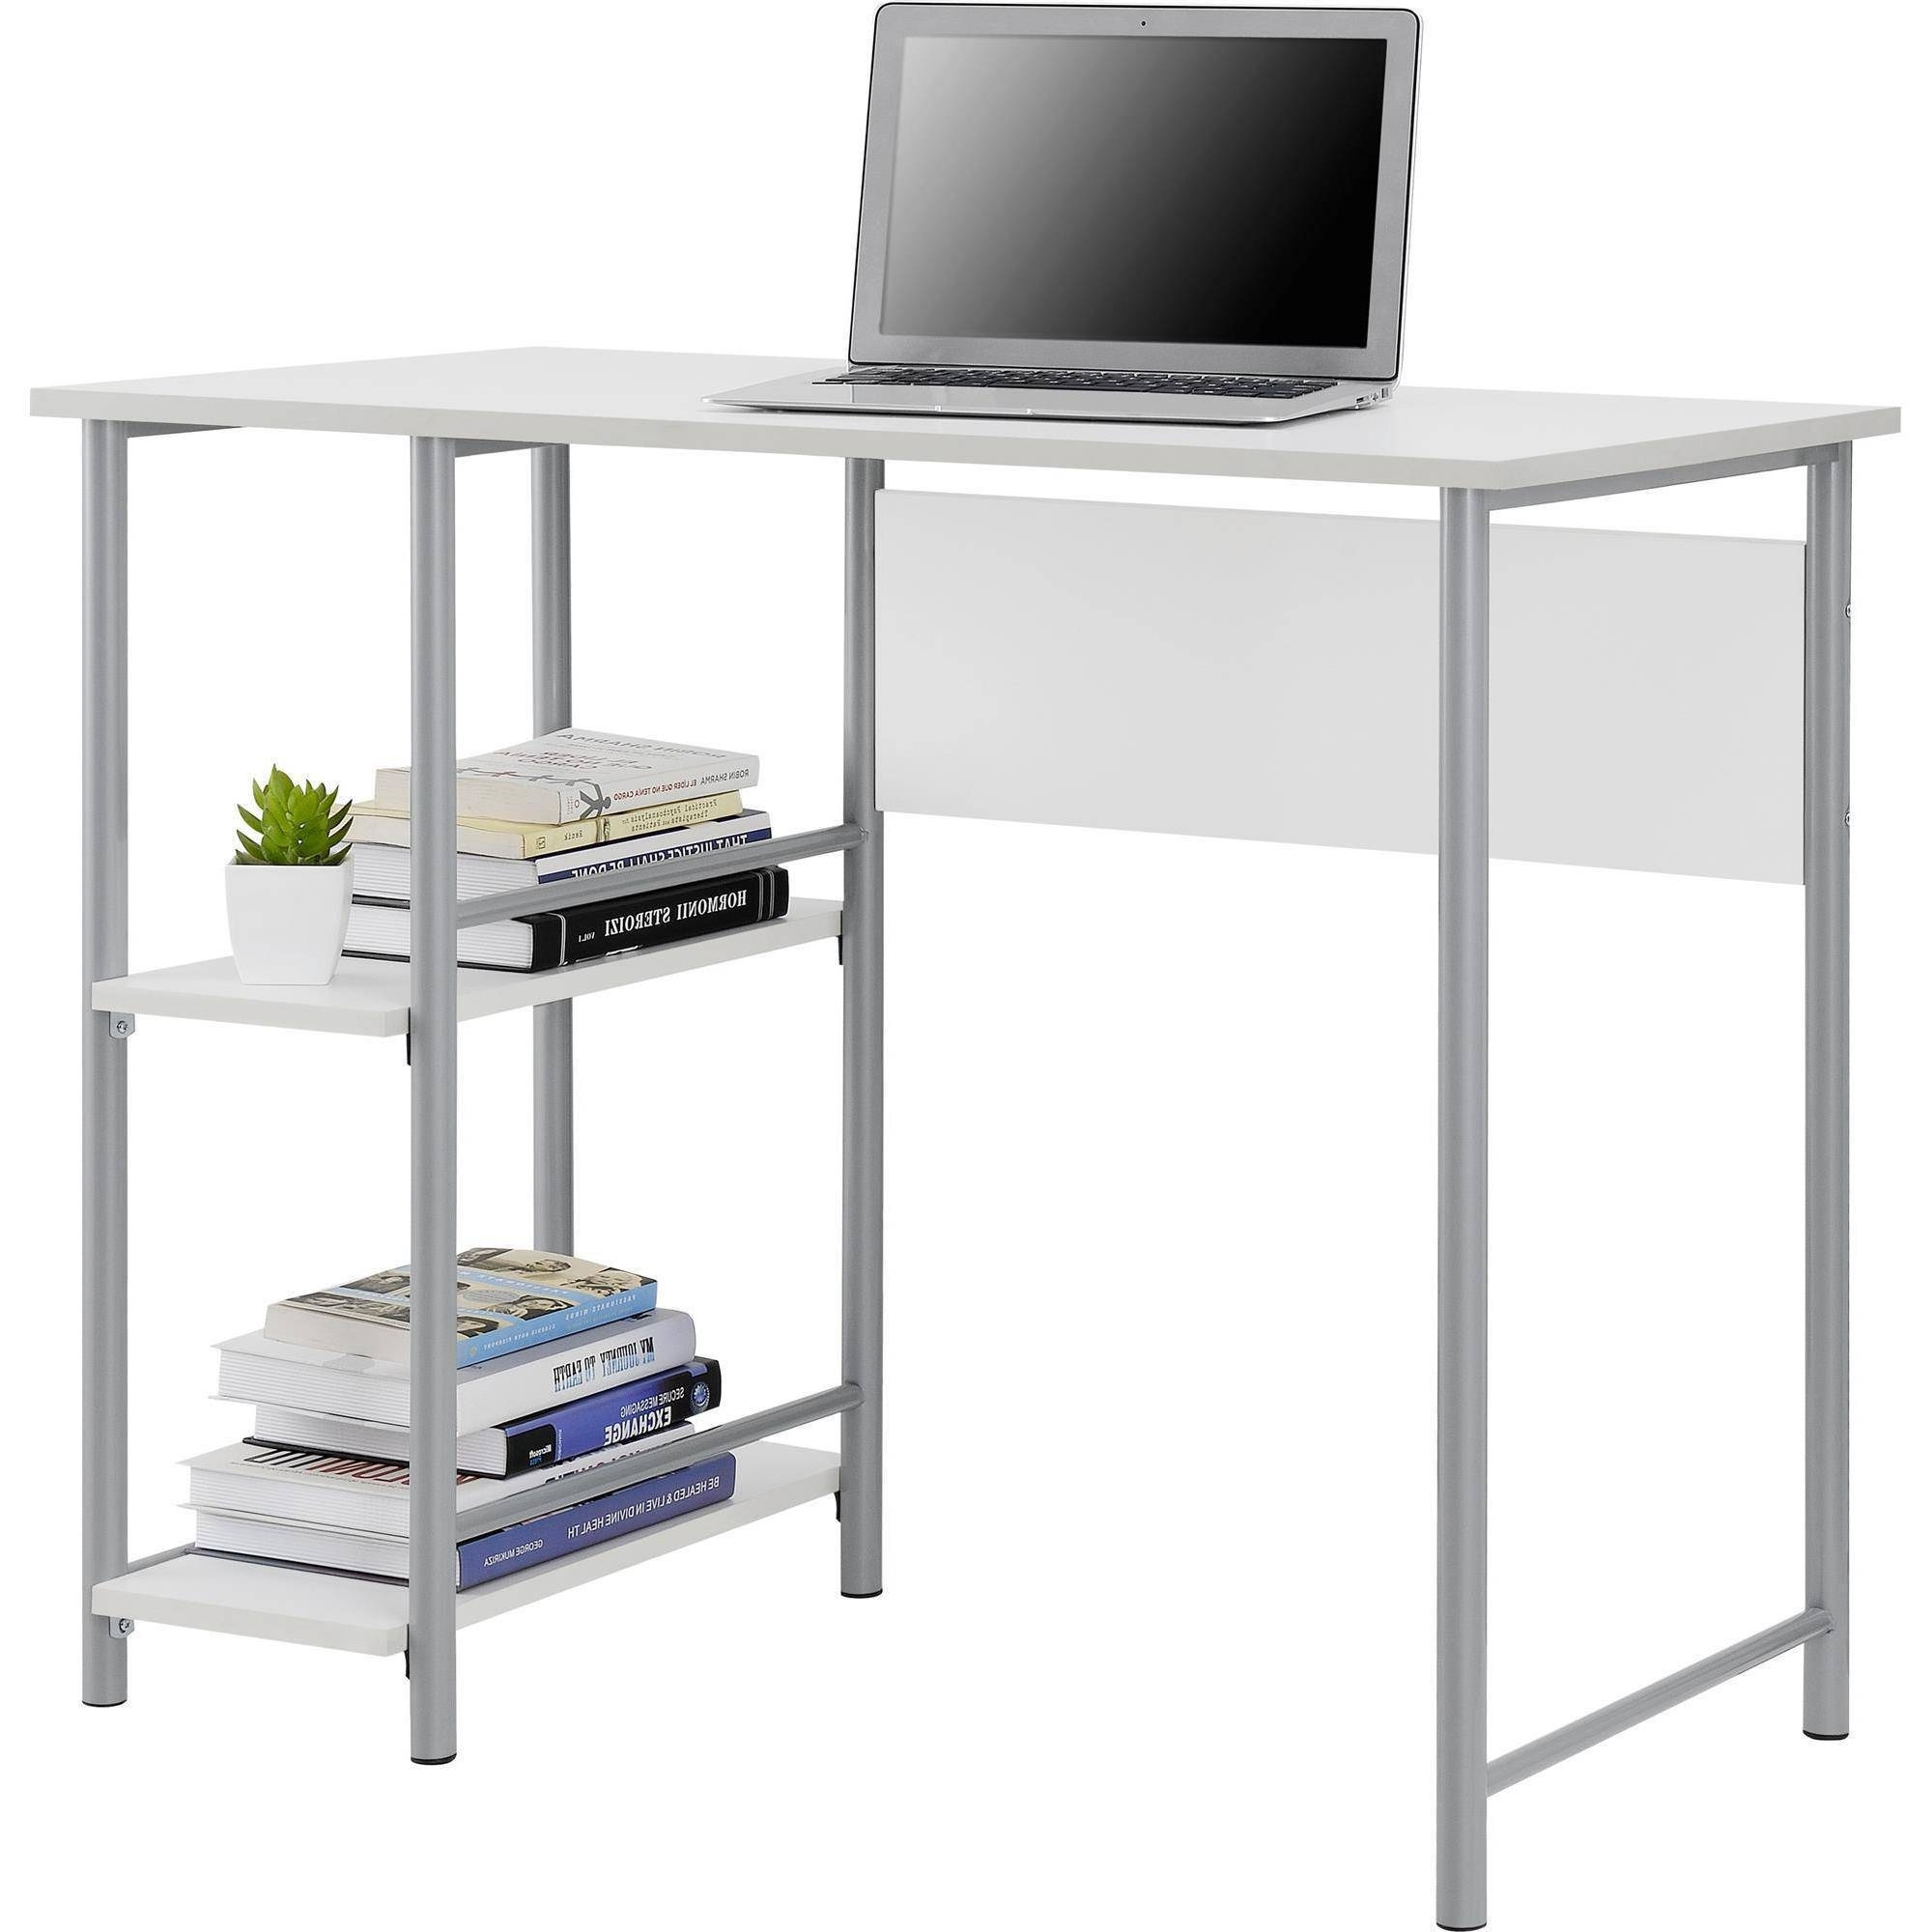 Computer Desks At Walmart With Regard To Most Current Mainstays Computer Desk, Multiple Colors – Walmart (View 9 of 20)